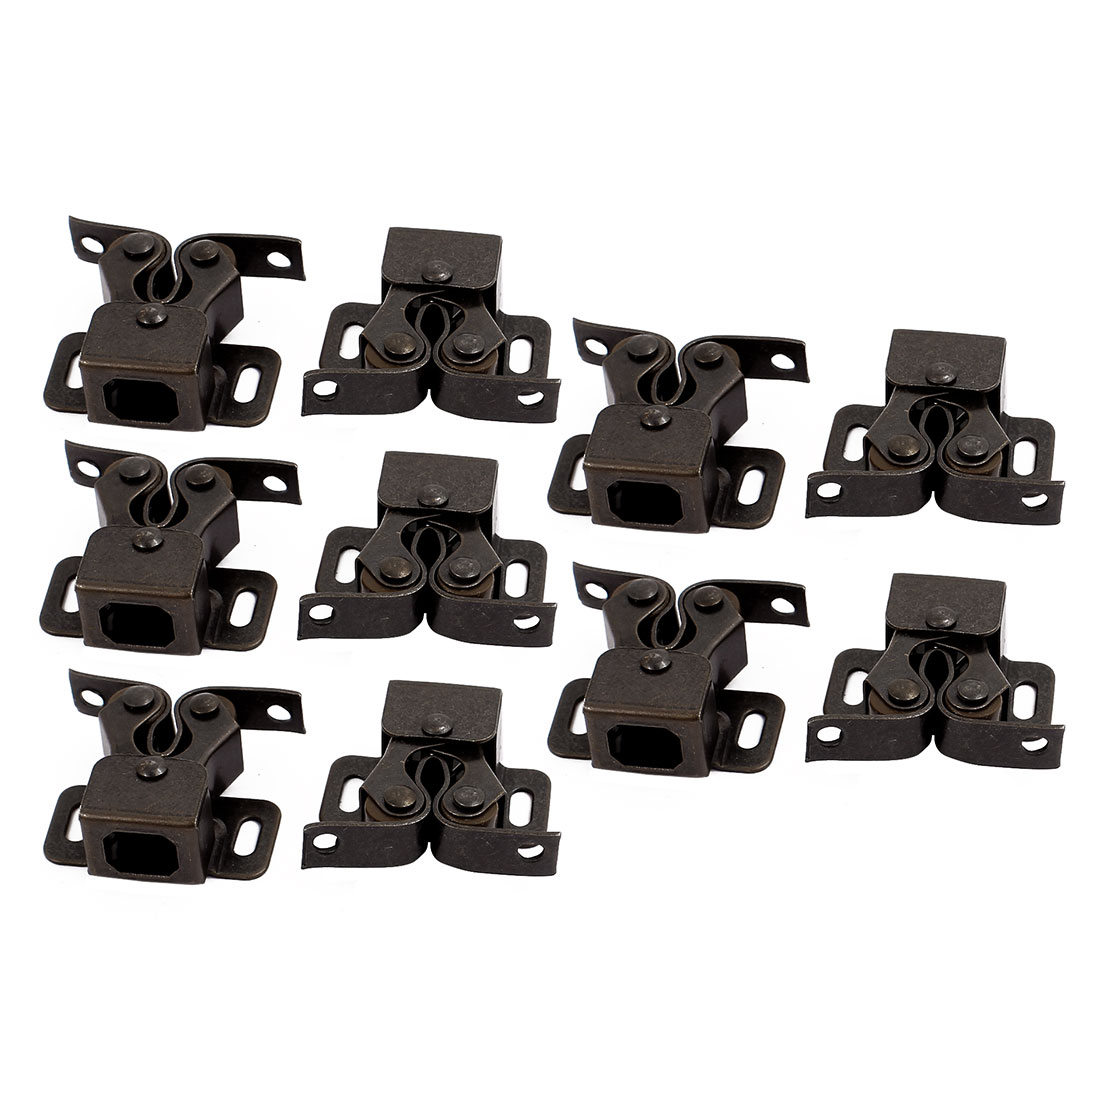 Cupboard Cabinet Door Double Ball Roller Catch Latch 35x28x12mm Bronze 10pcs